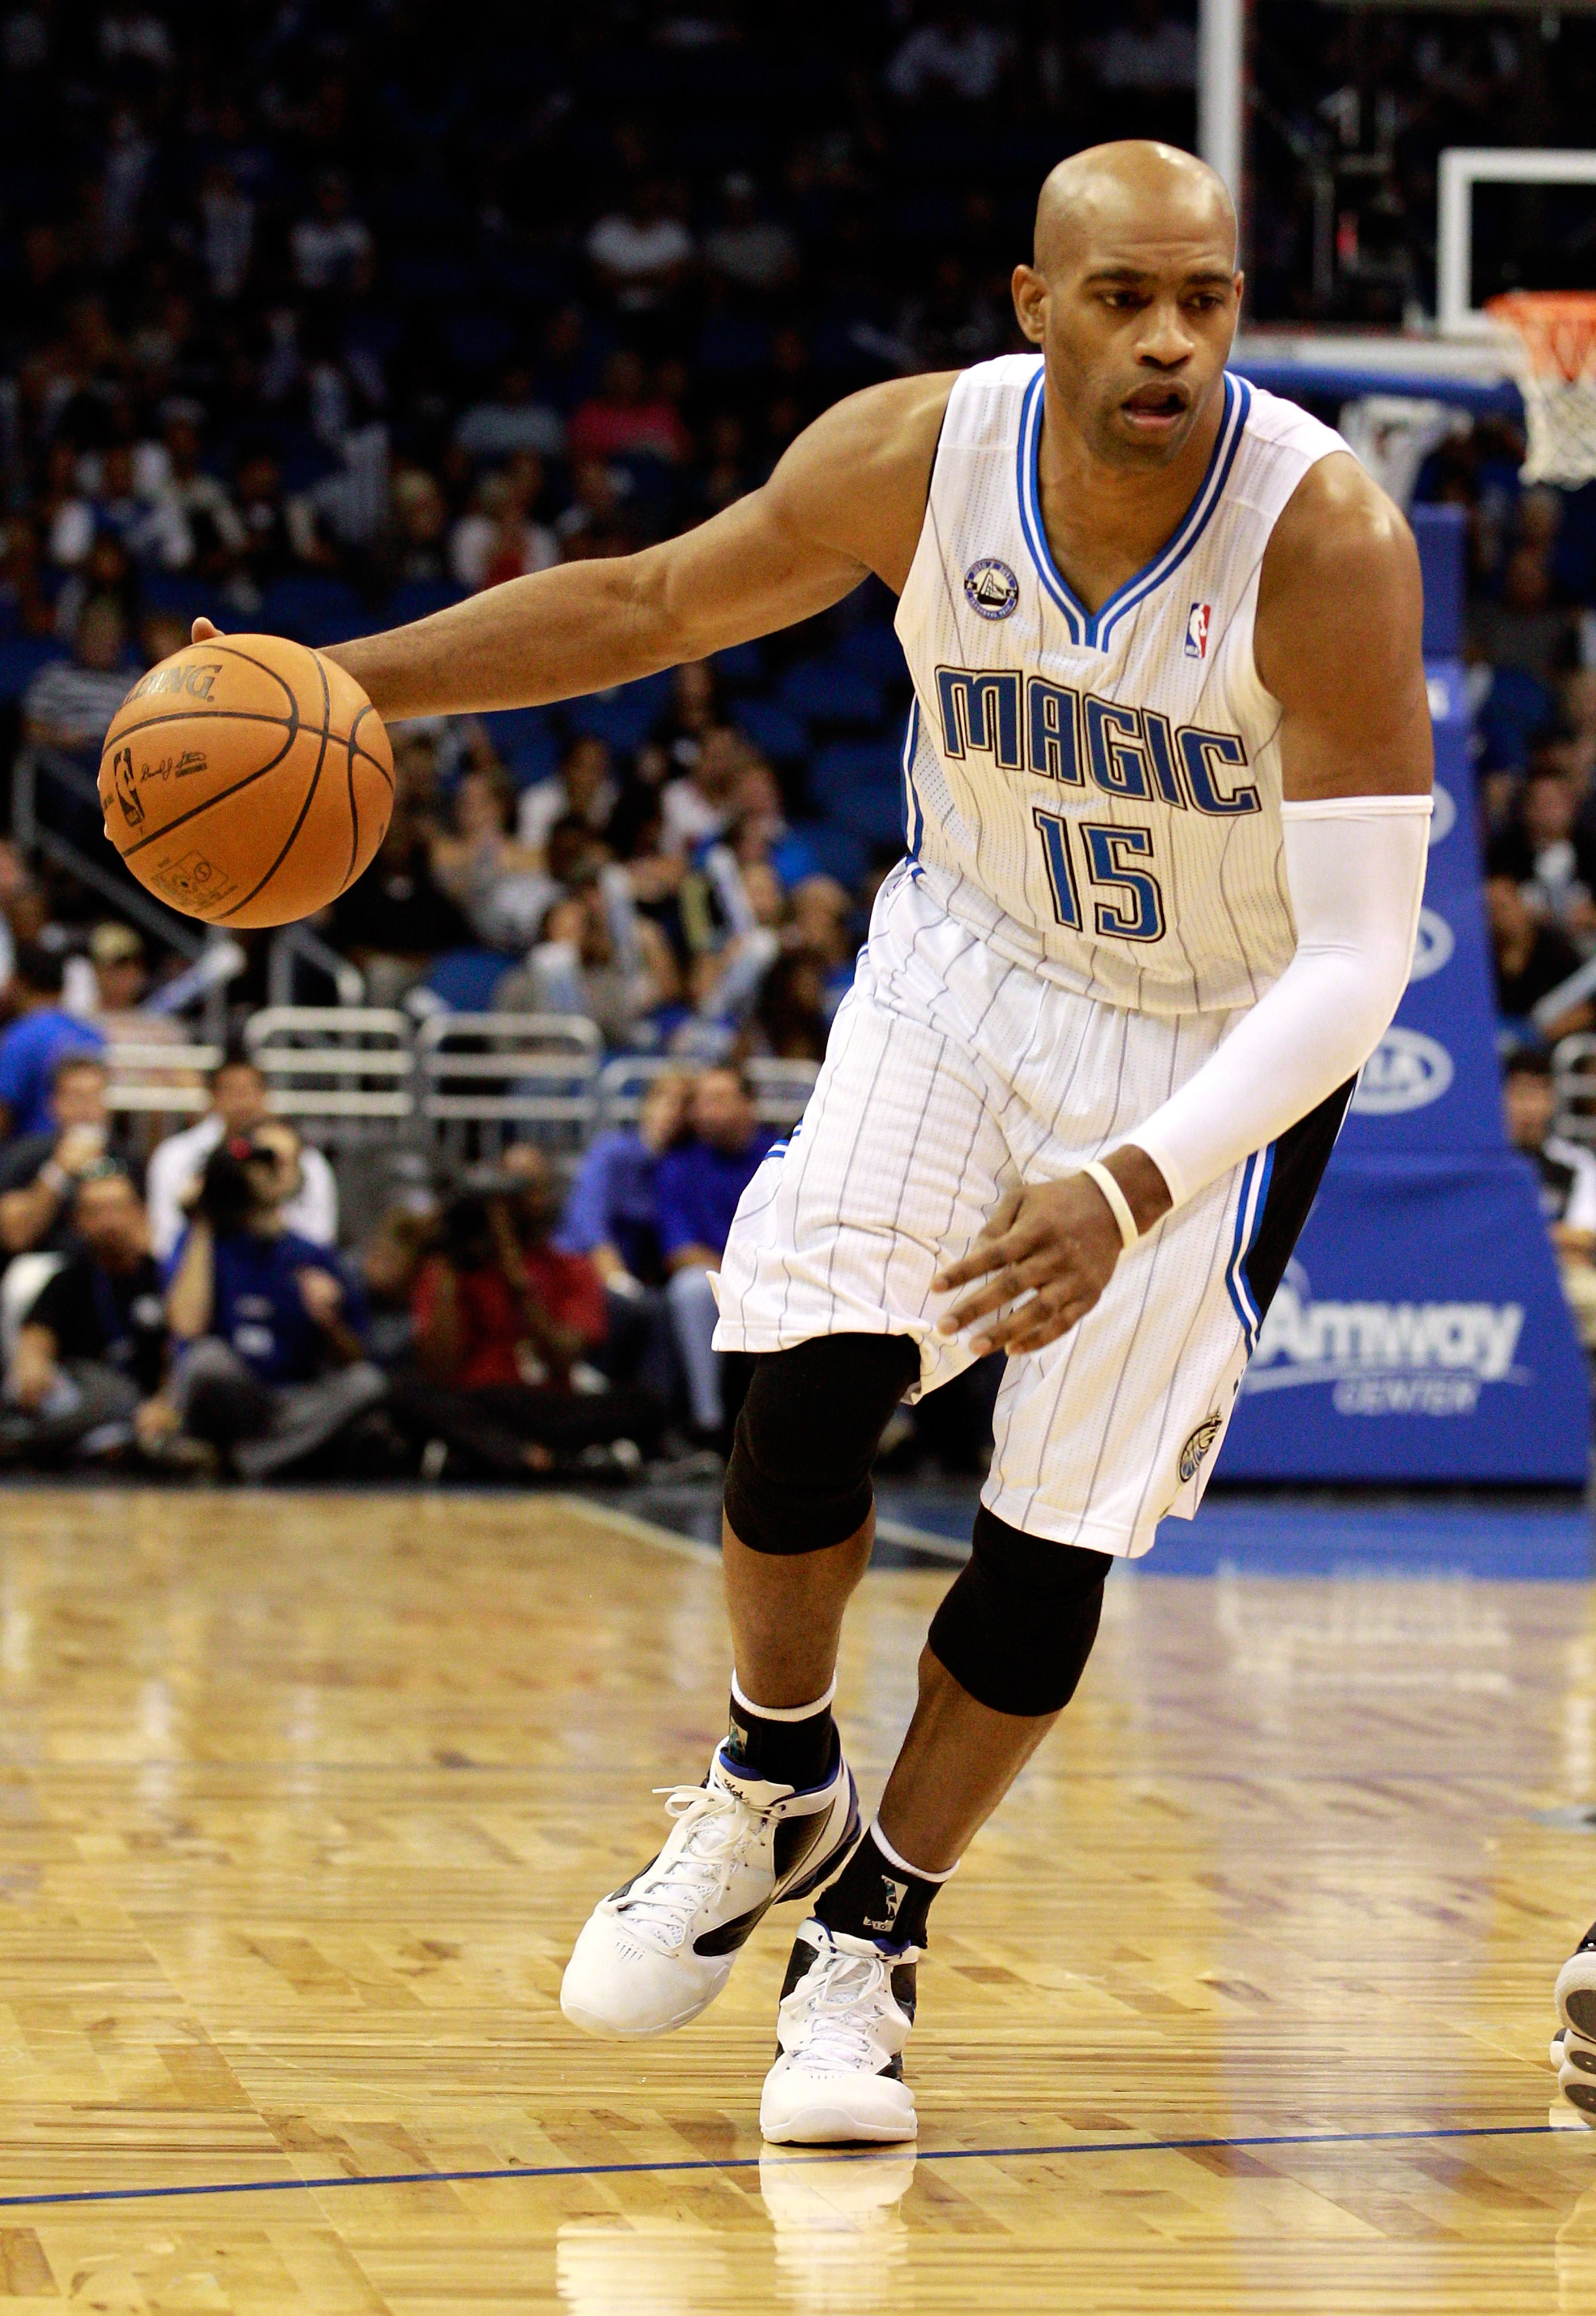 ORLANDO, FL - OCTOBER 10:  Vince Carter #15 of the Orlando Magic drives toward the basket during the game against the New Orleans Hornets at Amway Arena on October 10, 2010 in Orlando, Florida. NOTE TO USER: User expressly acknowledges and agrees that, by